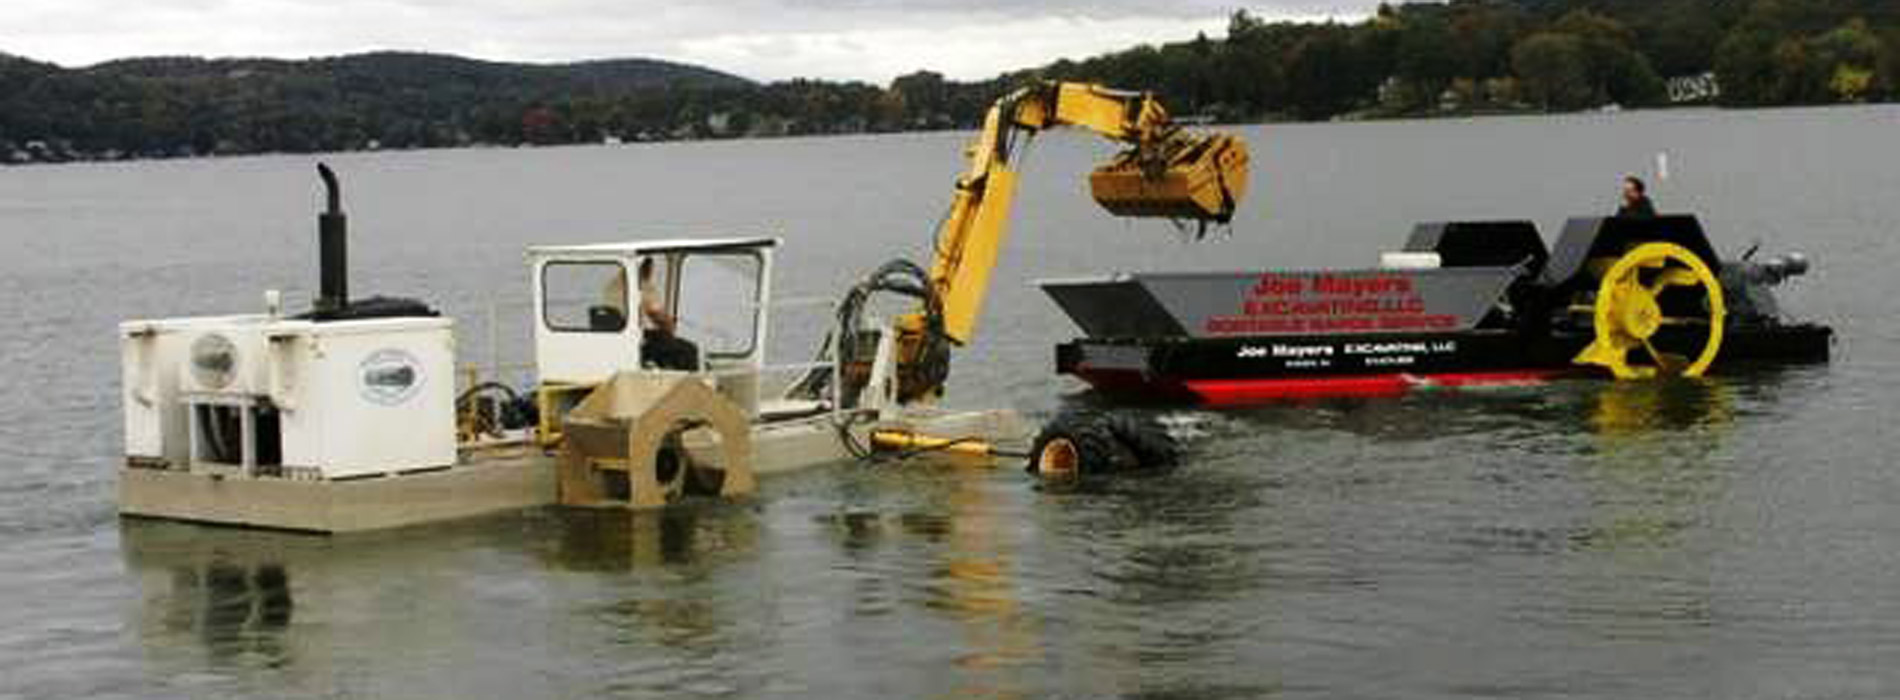 Septic Barge